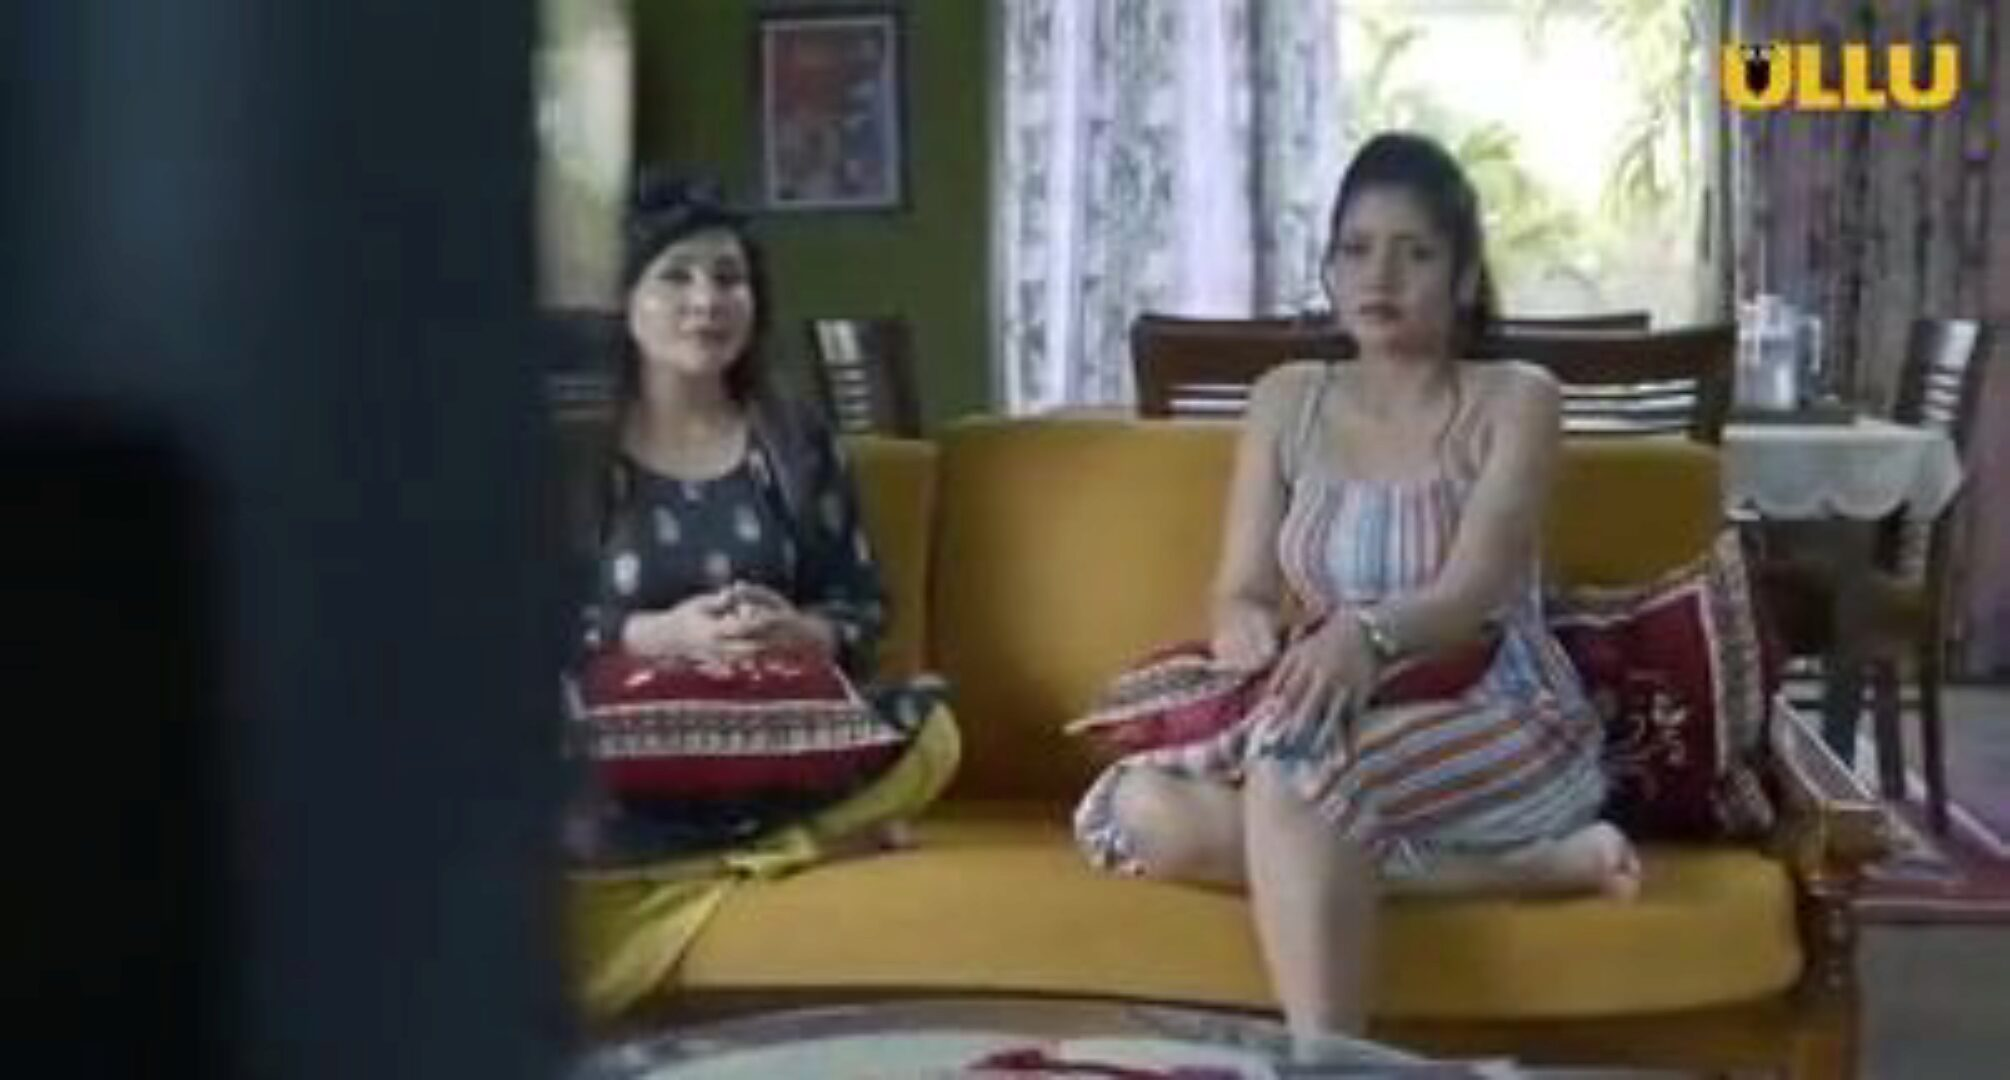 Daamaad Ne Patni Aur Saas Ko Choda Hindi Web Series Ullu Watch Daamaad Ne Patni Aur Saas Ko Choda Hindi Web Series Ullu video on xHamster - the ultimate selection of free-for-all Indian Mobile Hindi porno tube videos